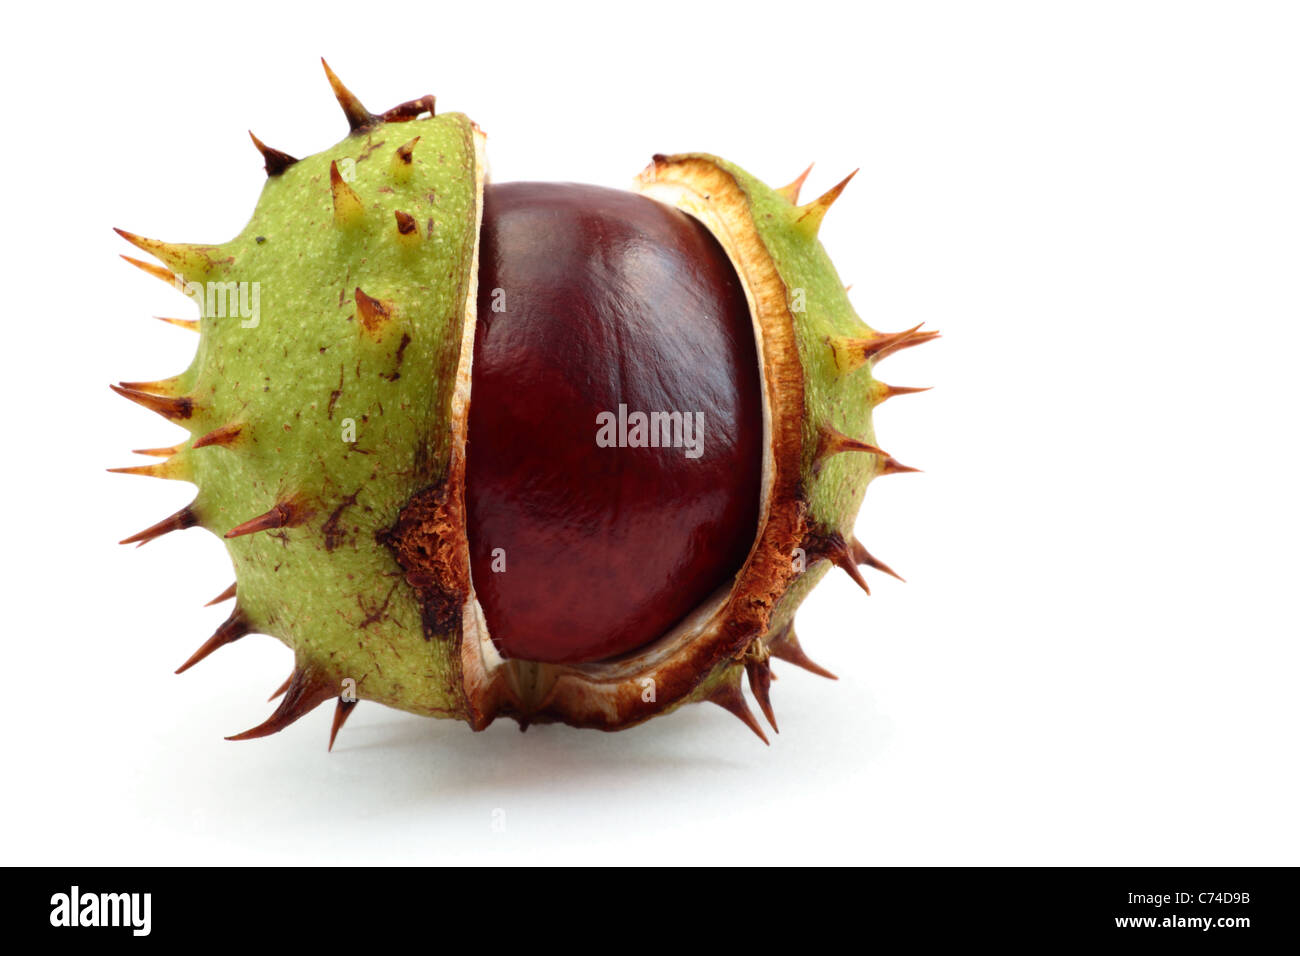 Conker in a shell on a white background. - Stock Image